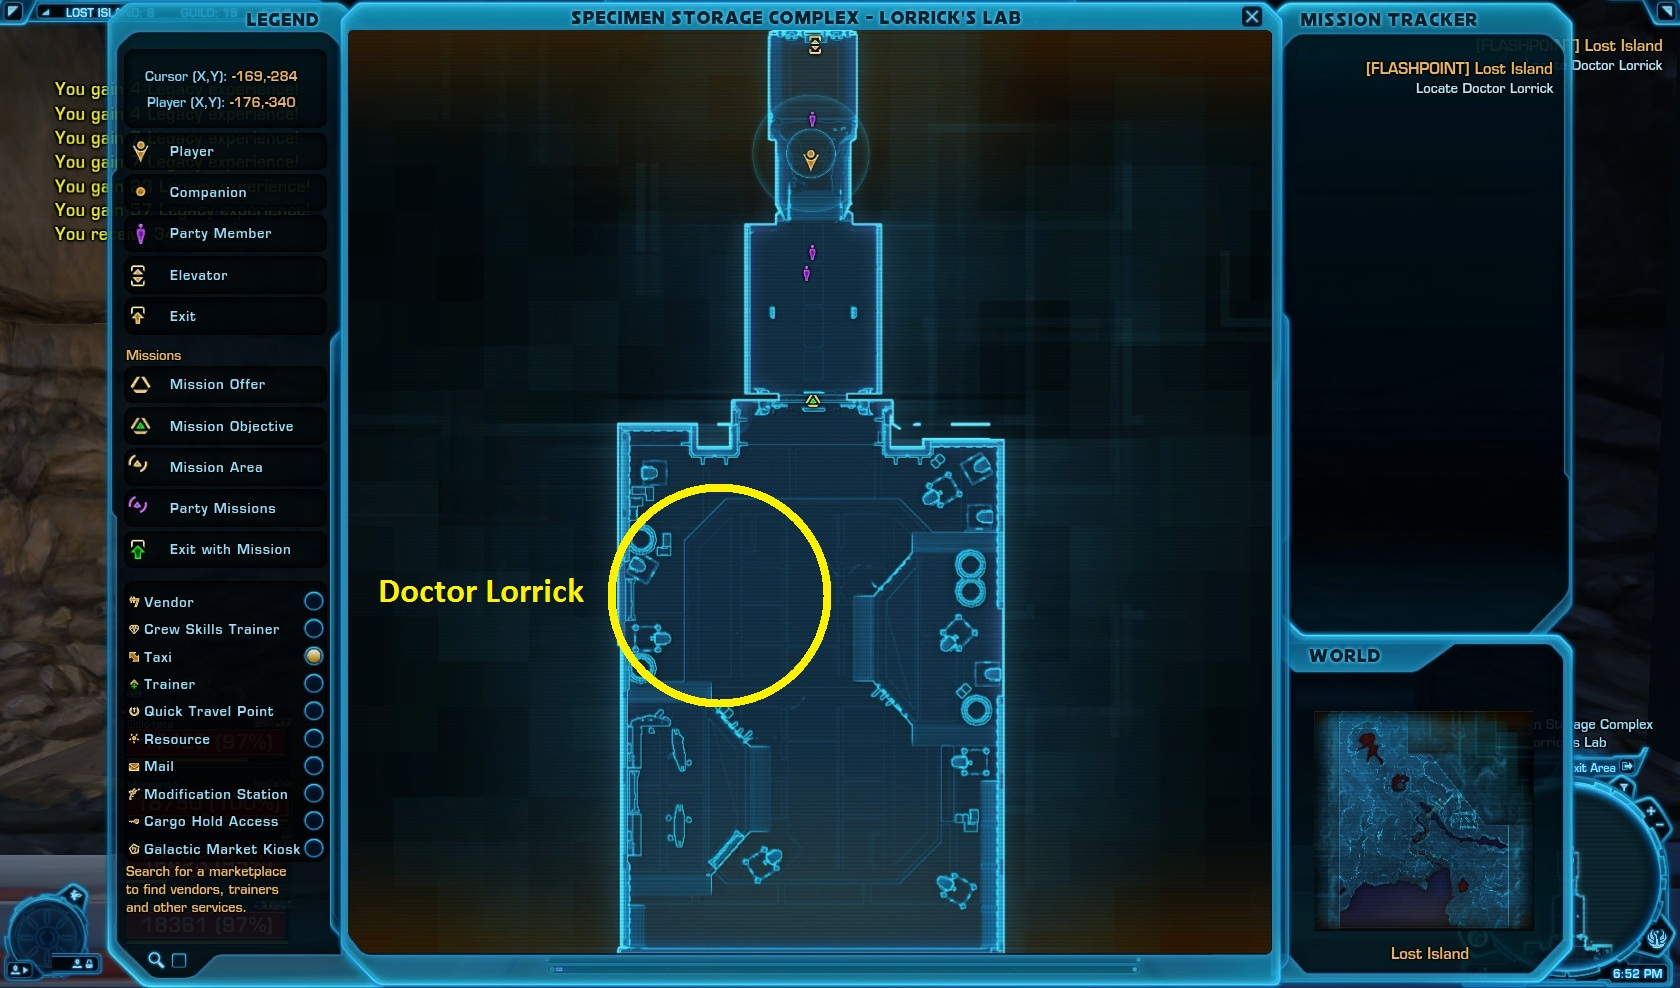 Doctor Lorrick Location